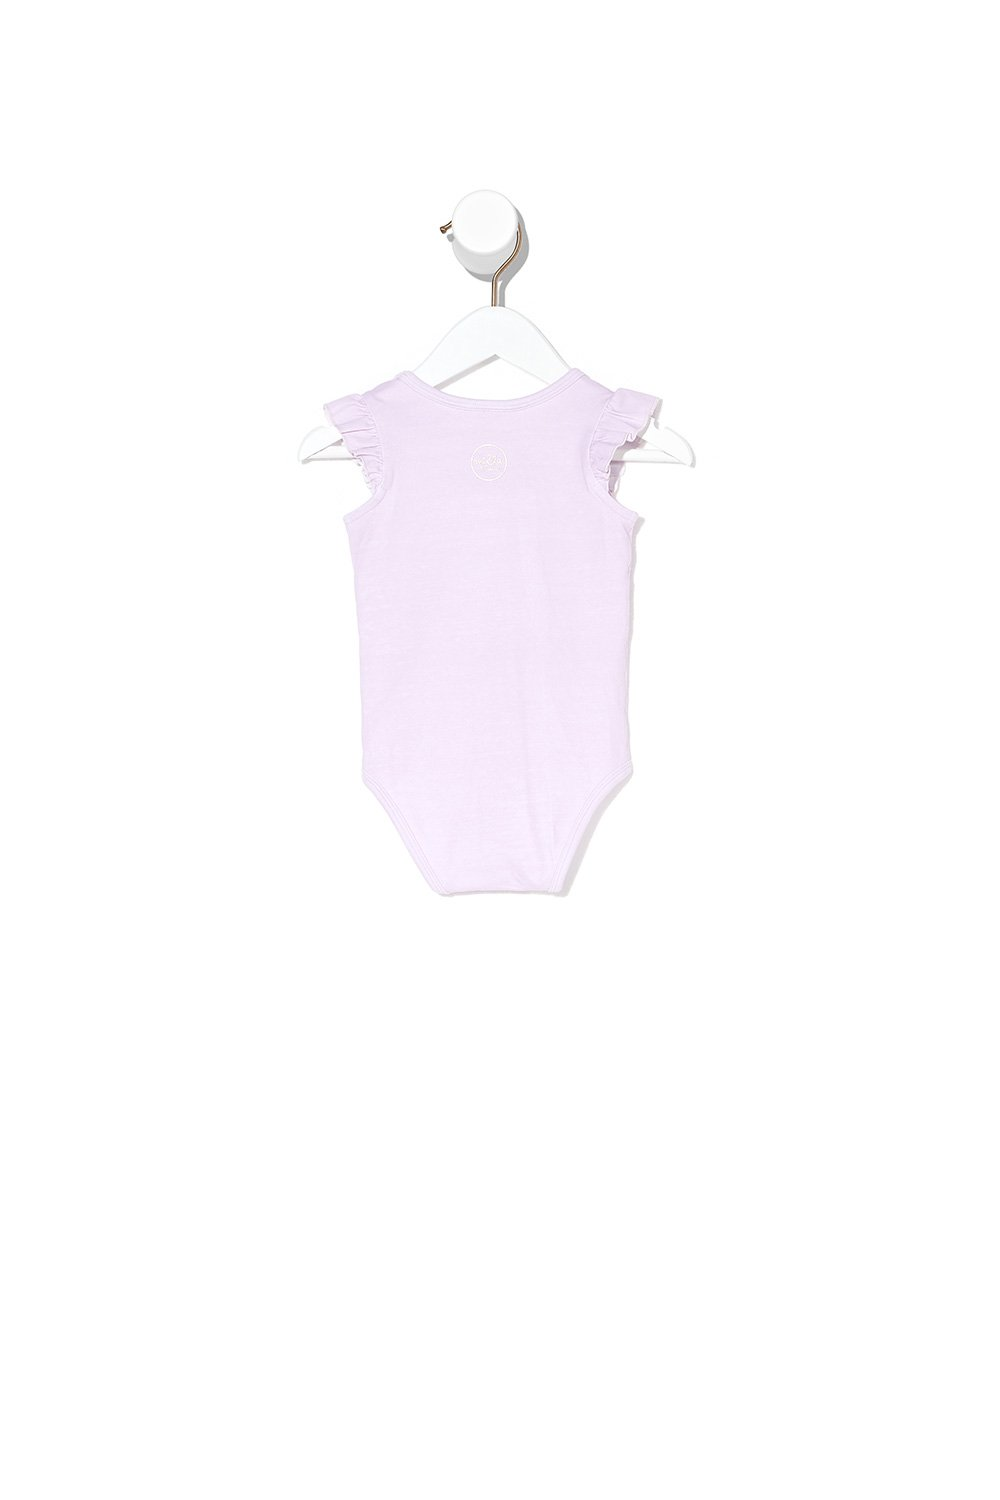 Believe in Love Babies Frill Onesie BABY CLOTHING CAMILLA